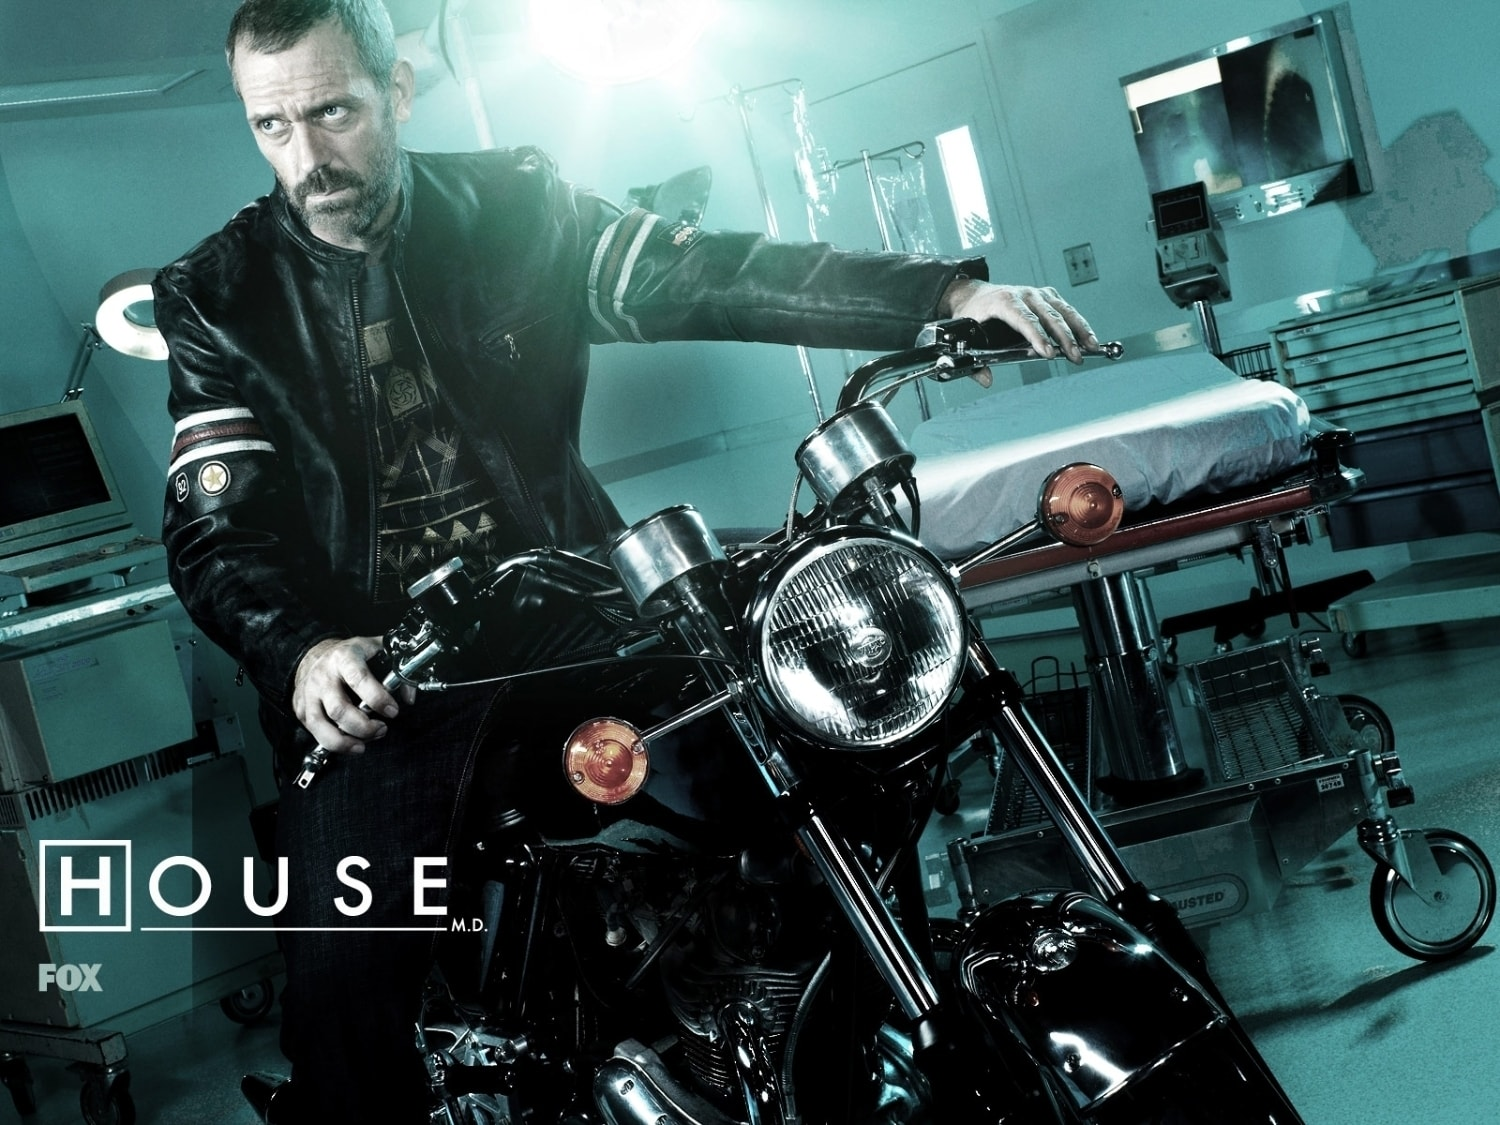 House M.d. widescreen